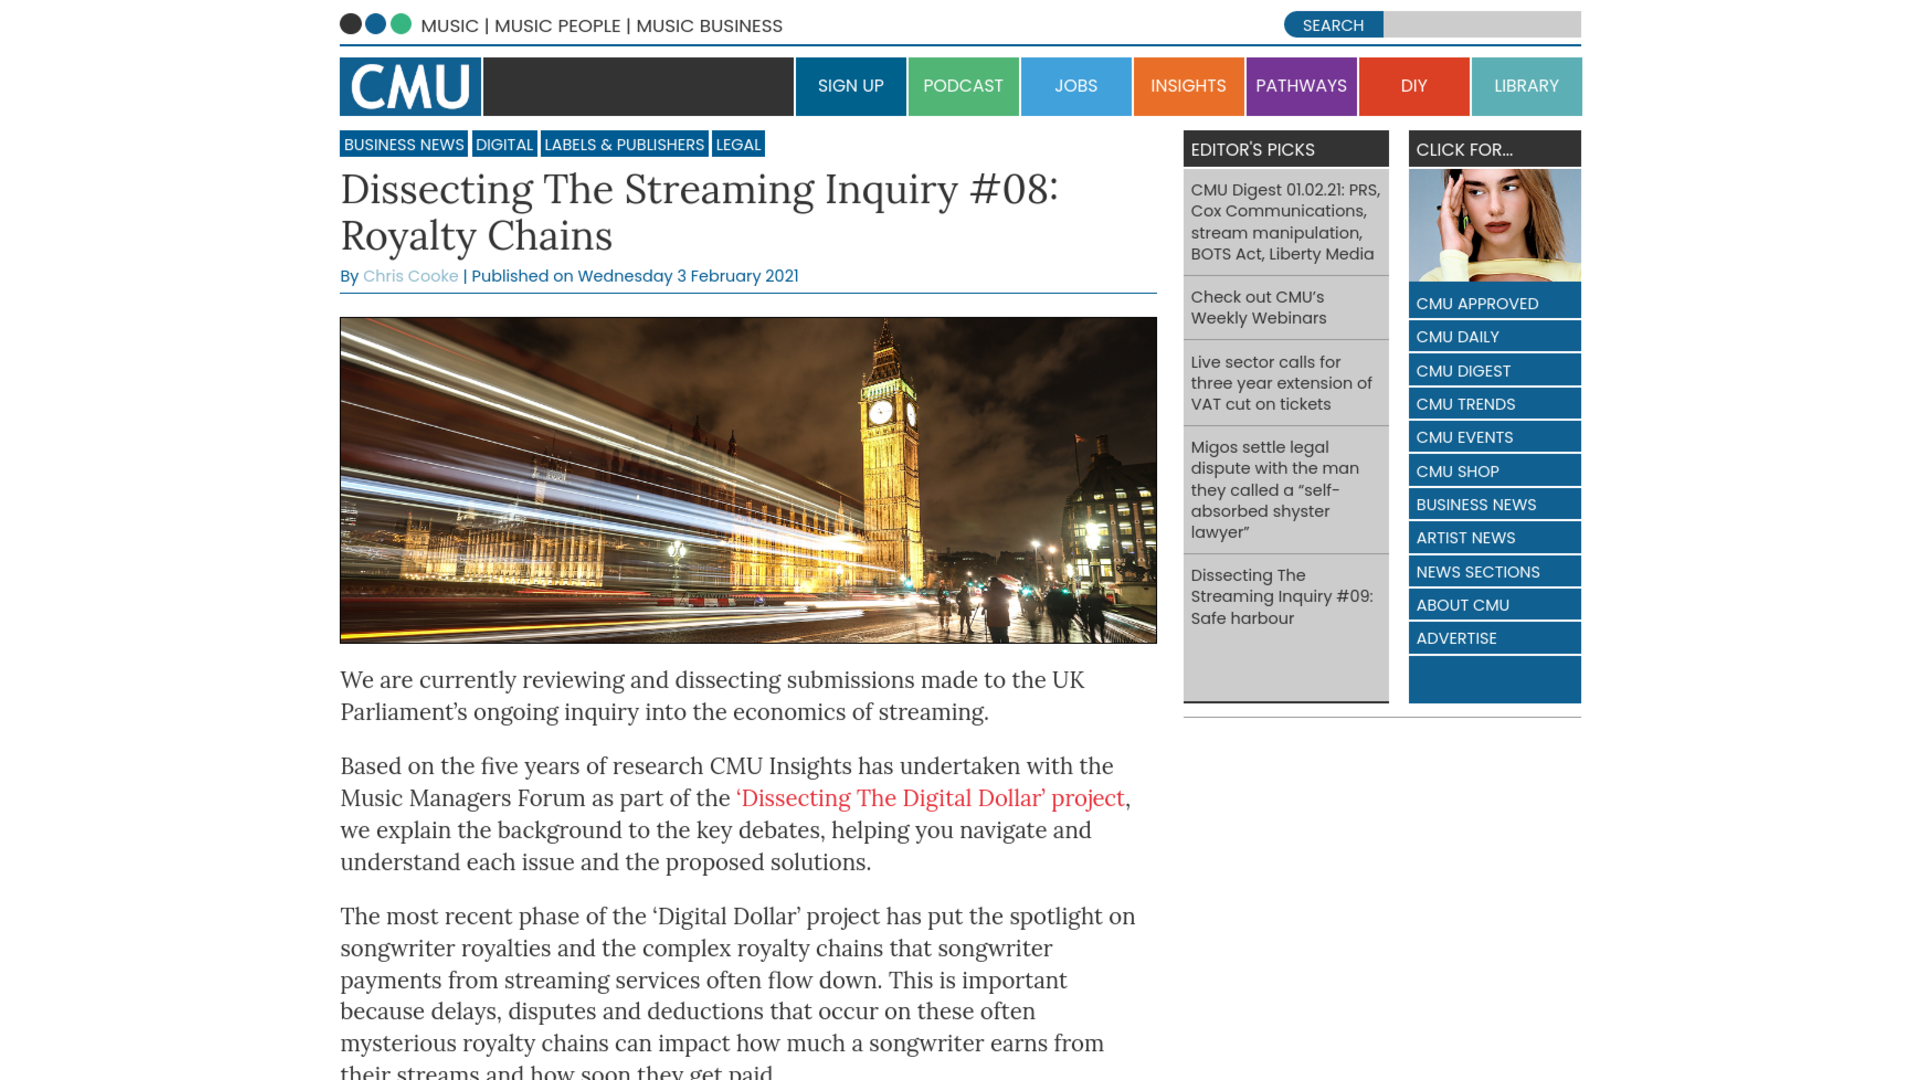 Fairness Rocks News Dissecting The Streaming Inquiry #08: Royalty Chains